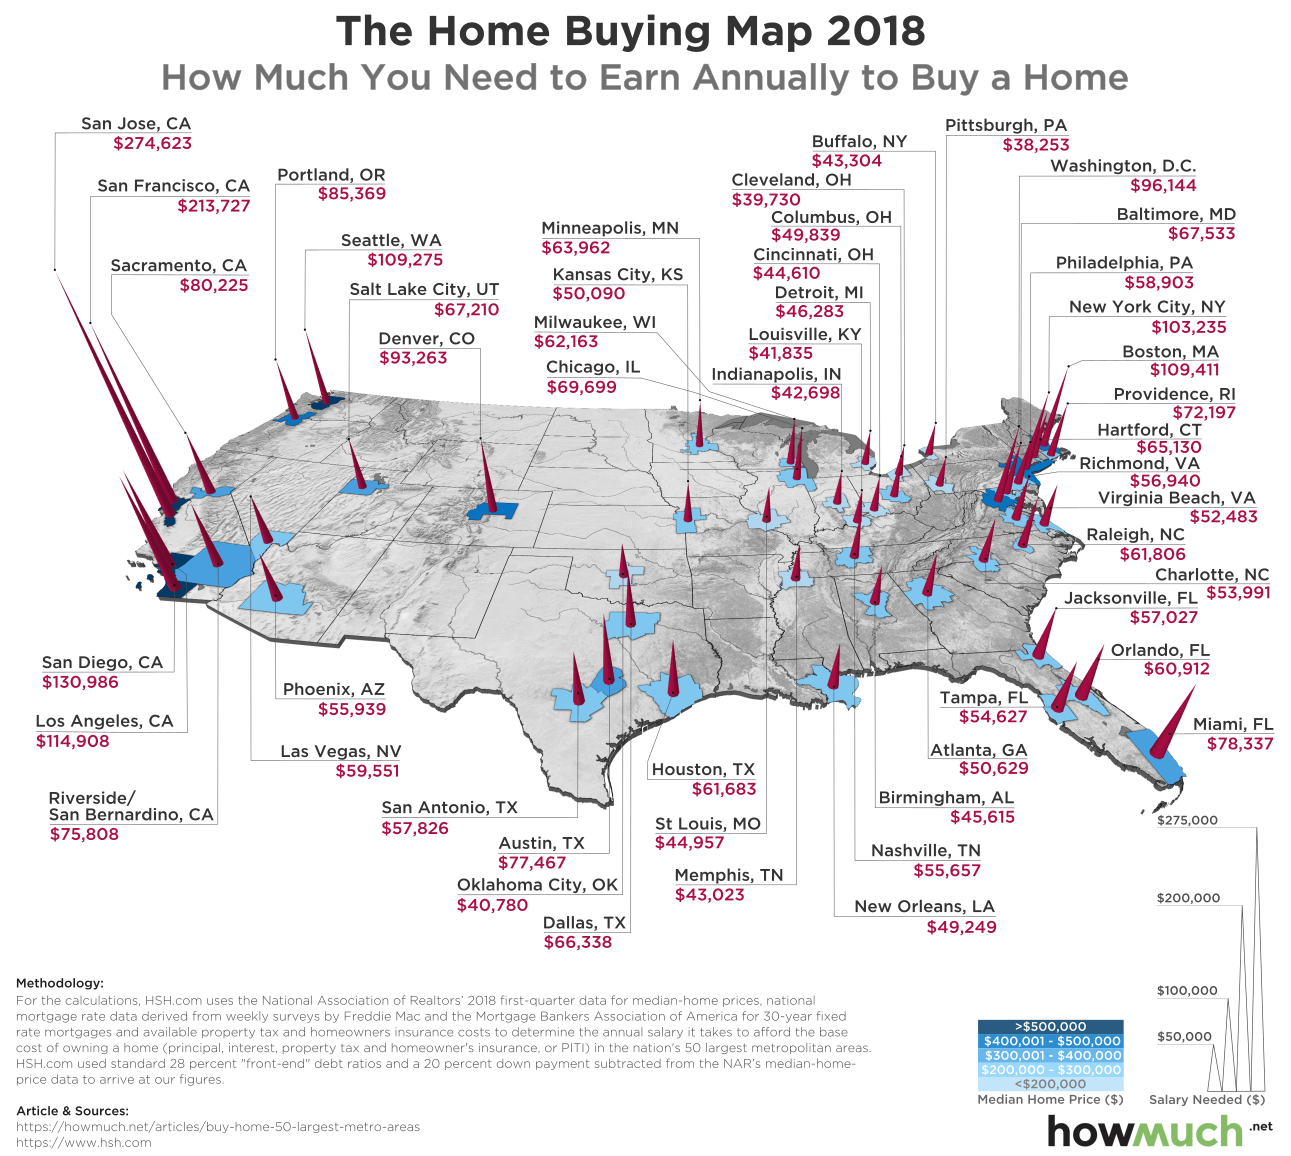 How Much You Must Earn to Afford a House in the 50 Largest U.S. Cities